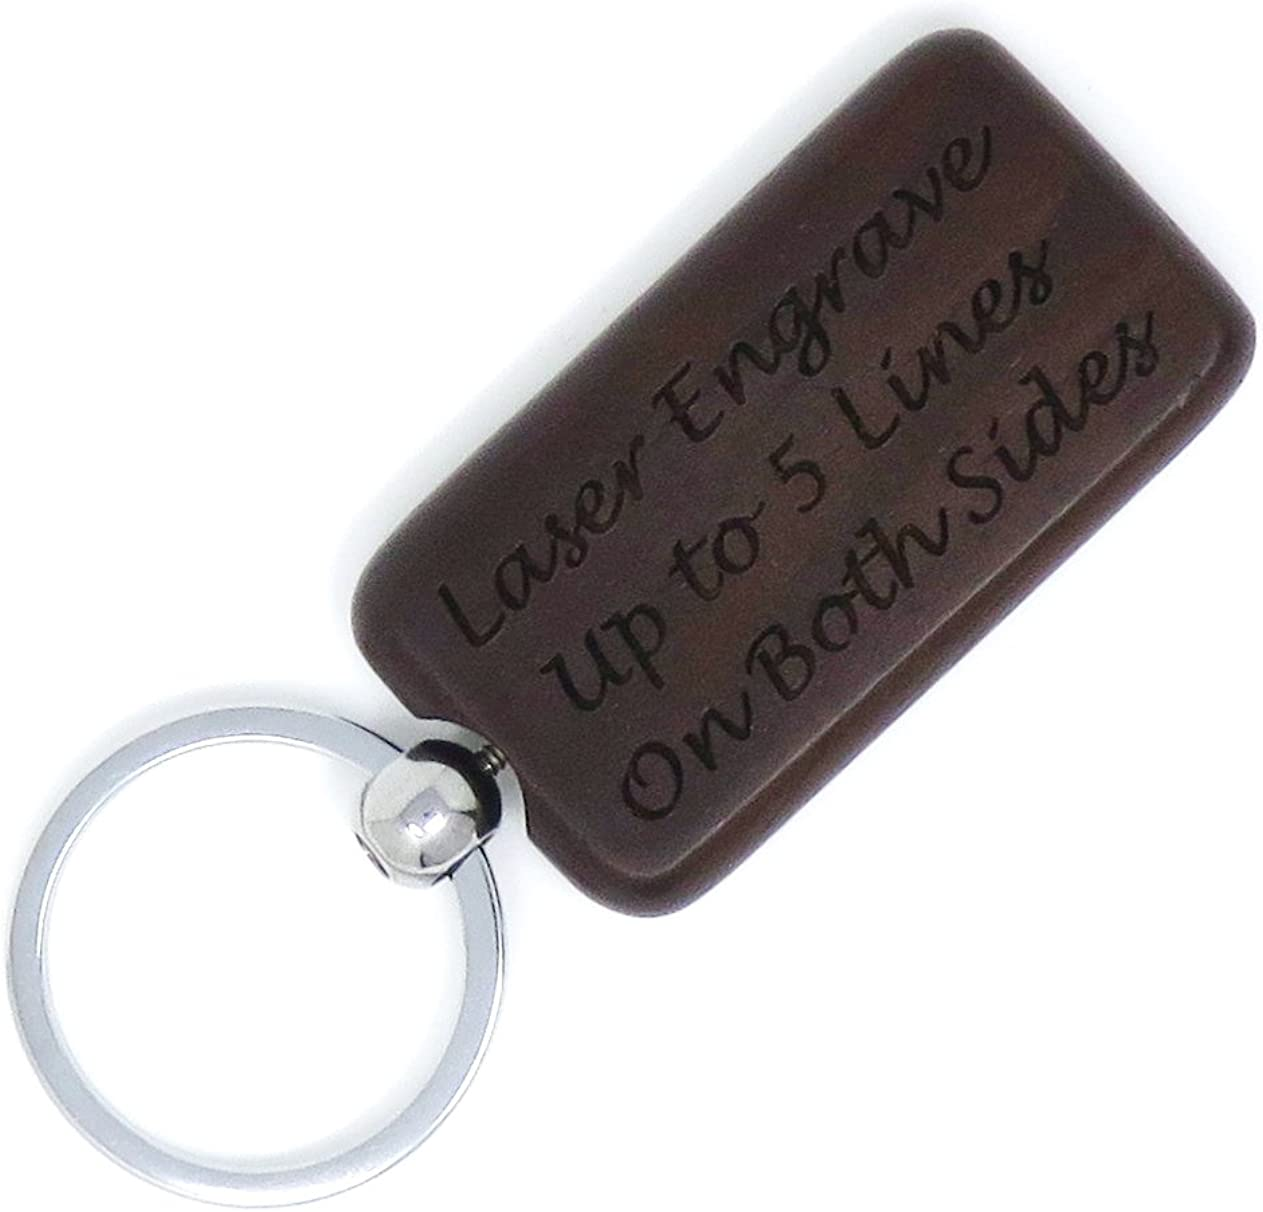 Custom Engraved Rectangle Key Chain - Key Ring - Front & Back Engraved - Personalized